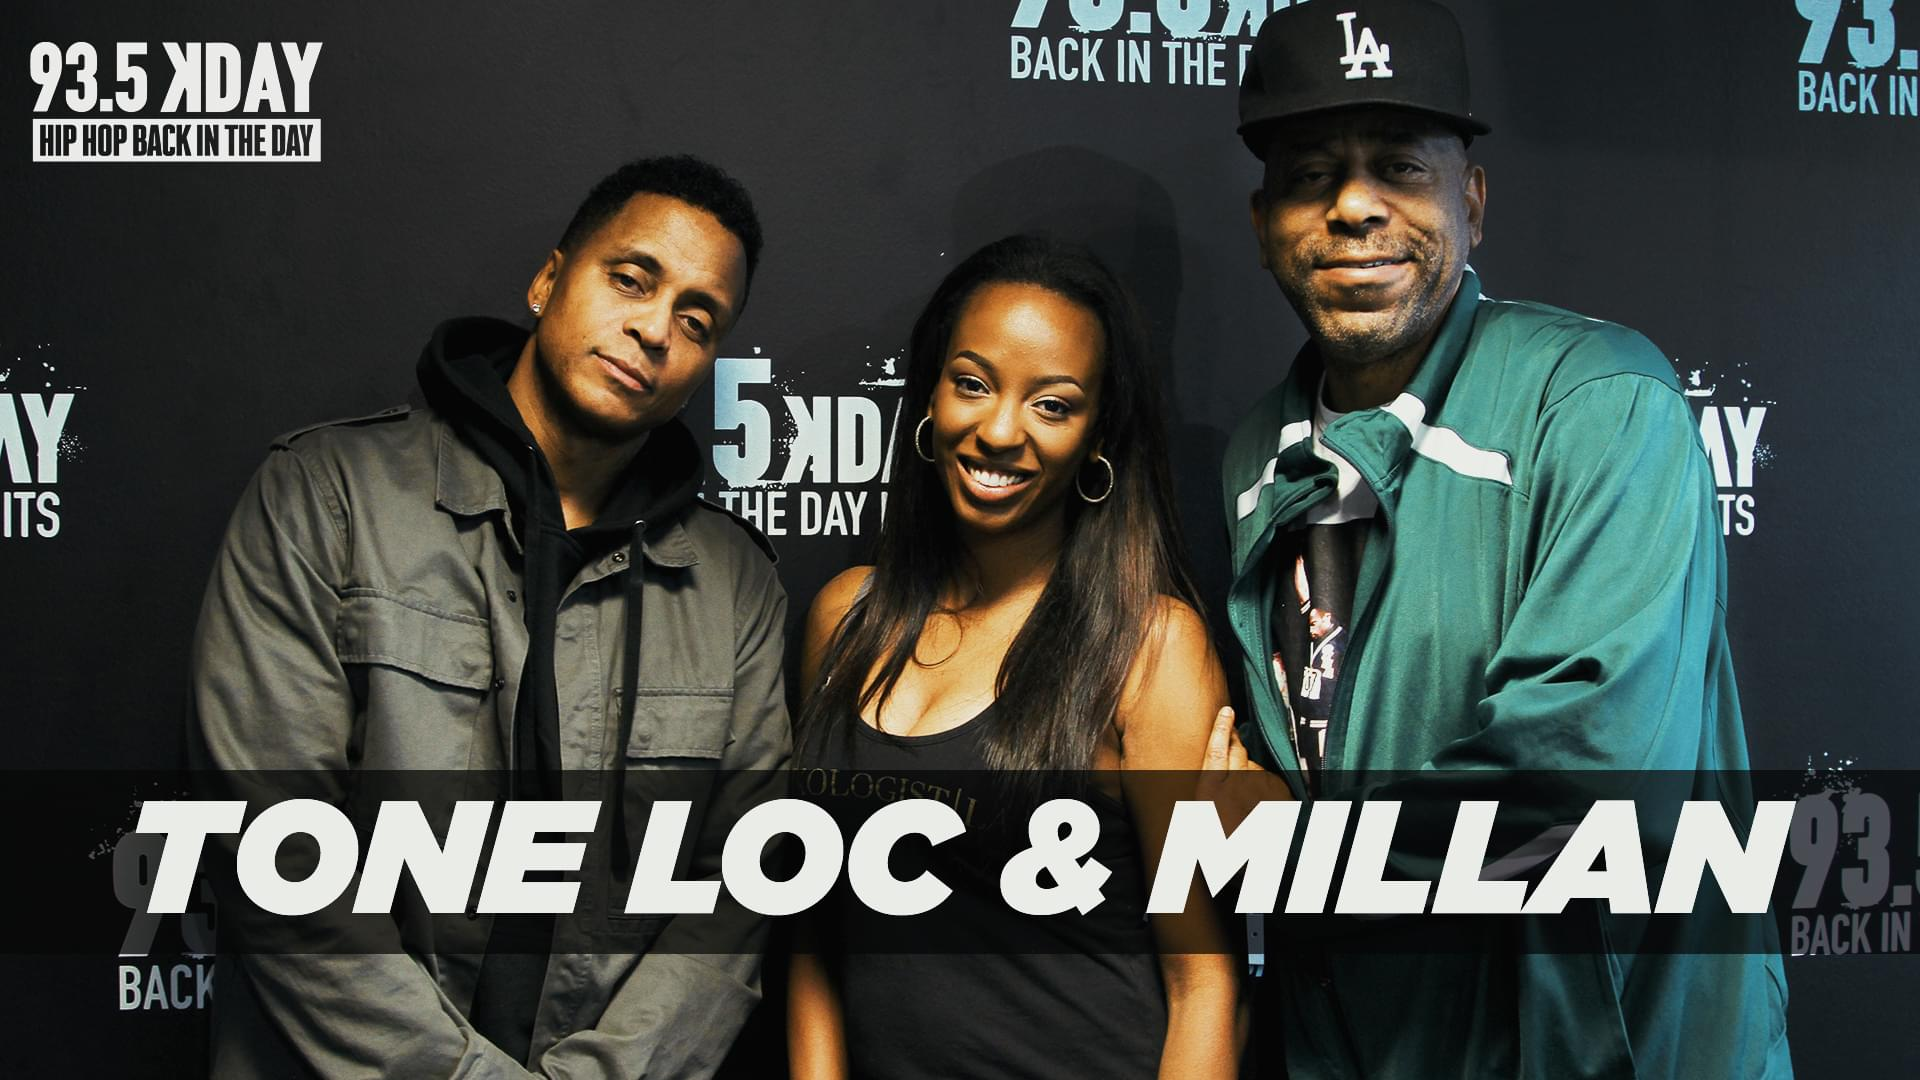 Tone Loc & Millan Talk Old Skool Spring Jam Including Coolio, Michel'le, Candy Man, & Melvin Riley